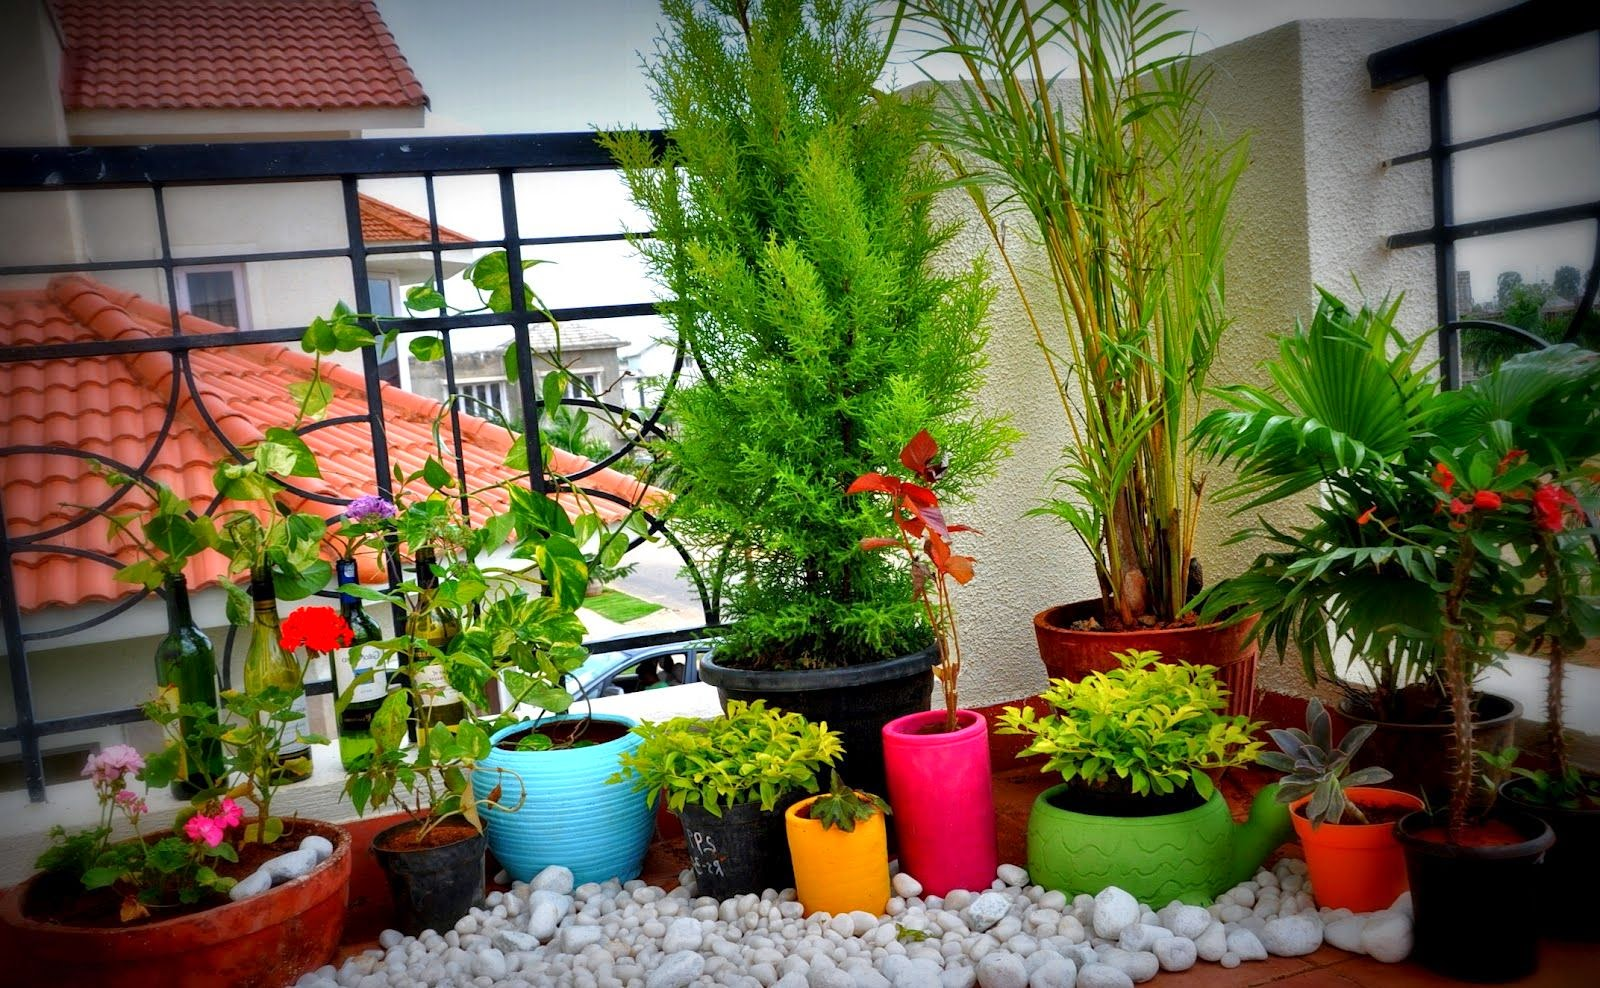 Home Garden Design For Small Spaces